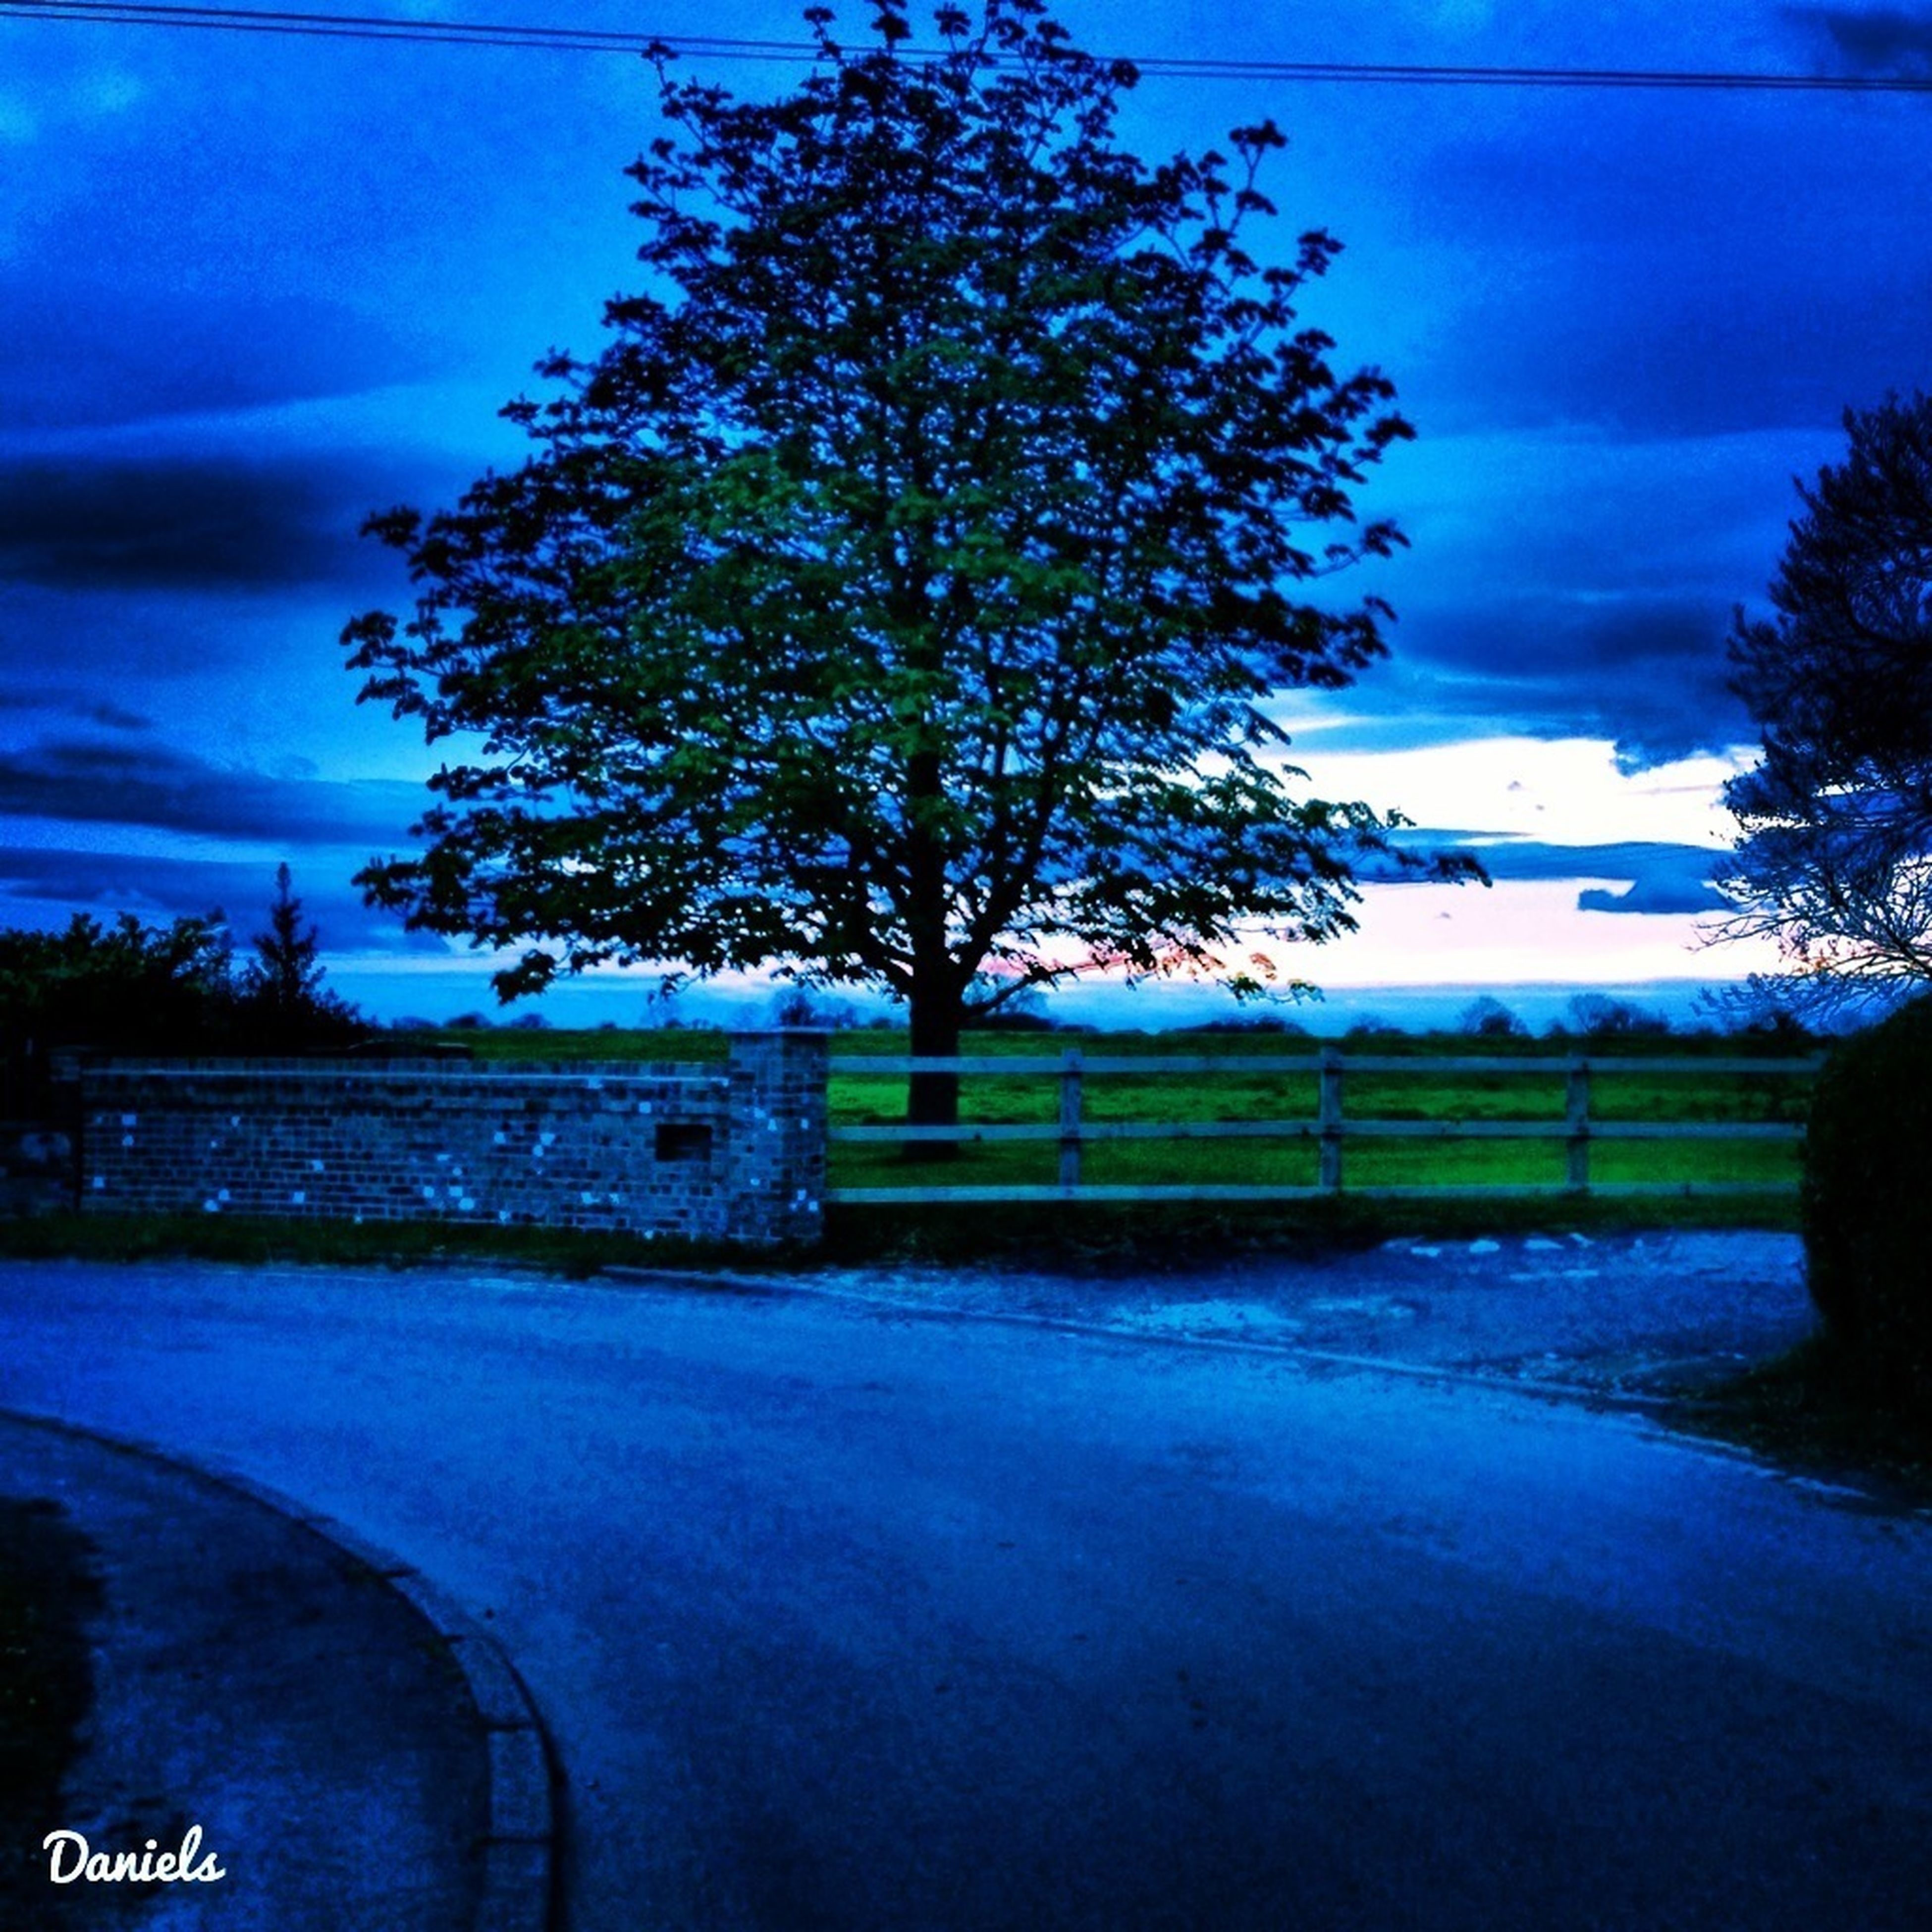 sky, tree, transportation, road, cloud - sky, bare tree, landscape, field, tranquility, cloud, country road, street, nature, tranquil scene, land vehicle, road marking, blue, car, no people, the way forward